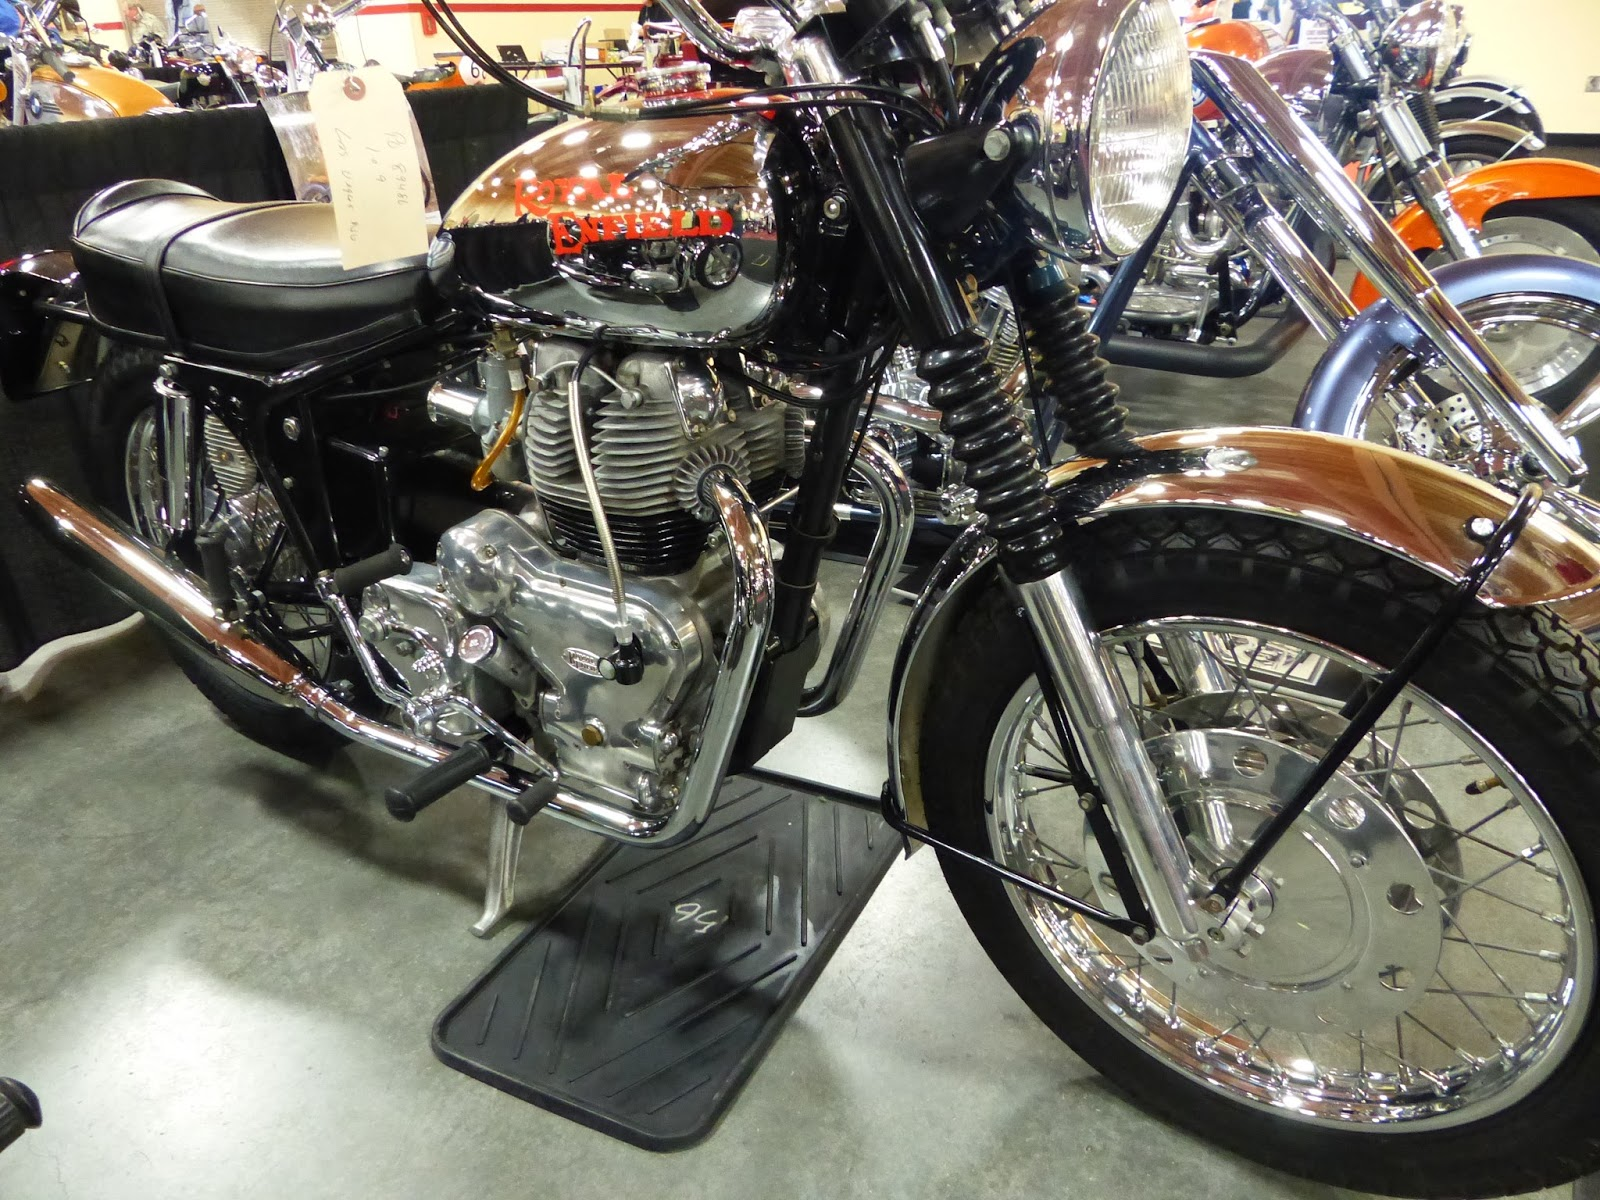 oldmotodude royal enfield interceptor sold for 10 750 at. Black Bedroom Furniture Sets. Home Design Ideas